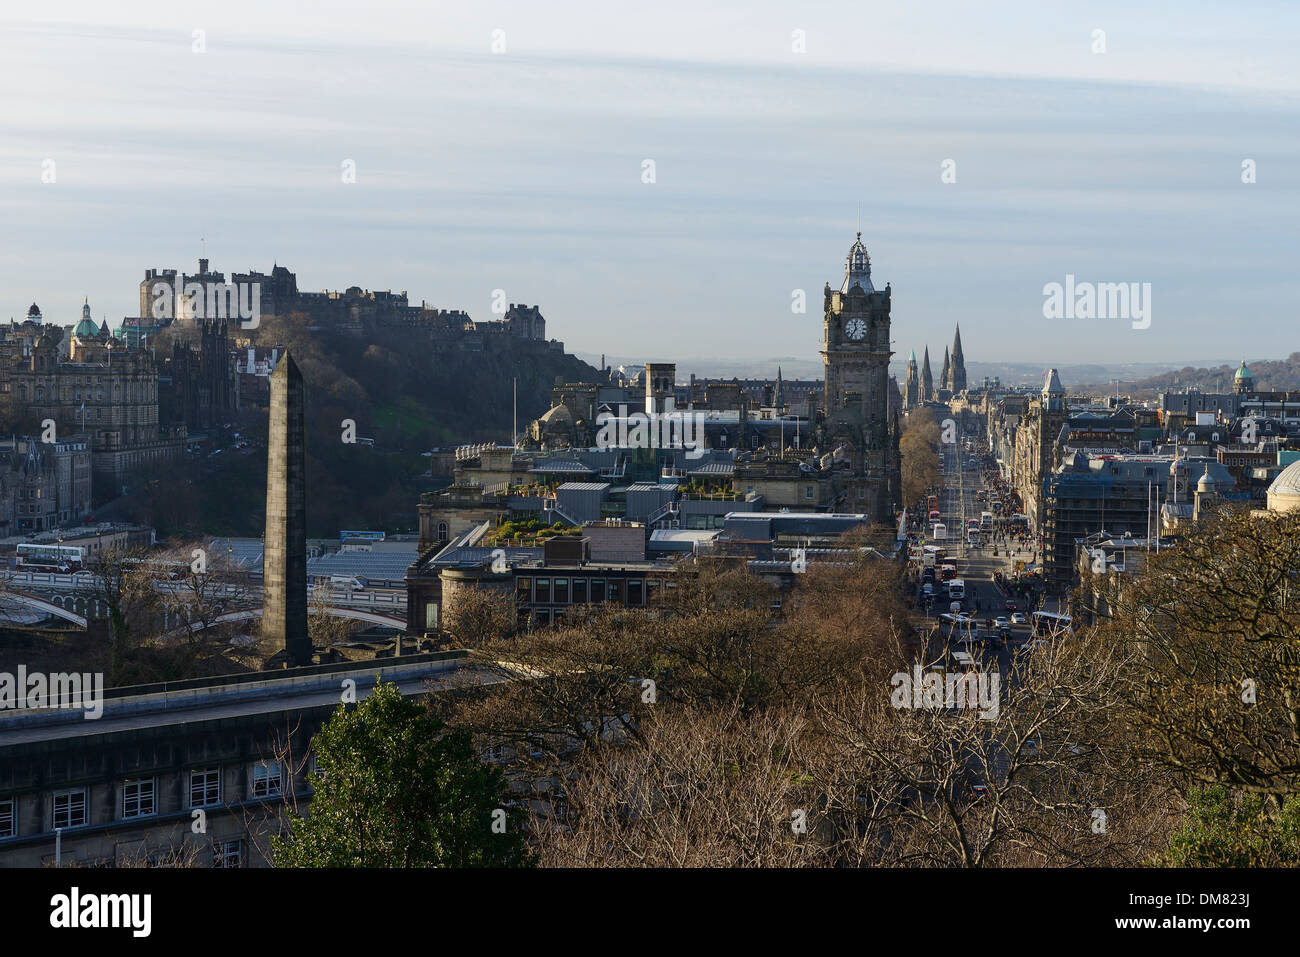 Edinburgh city centre viewed from Calton Hill - Stock Image